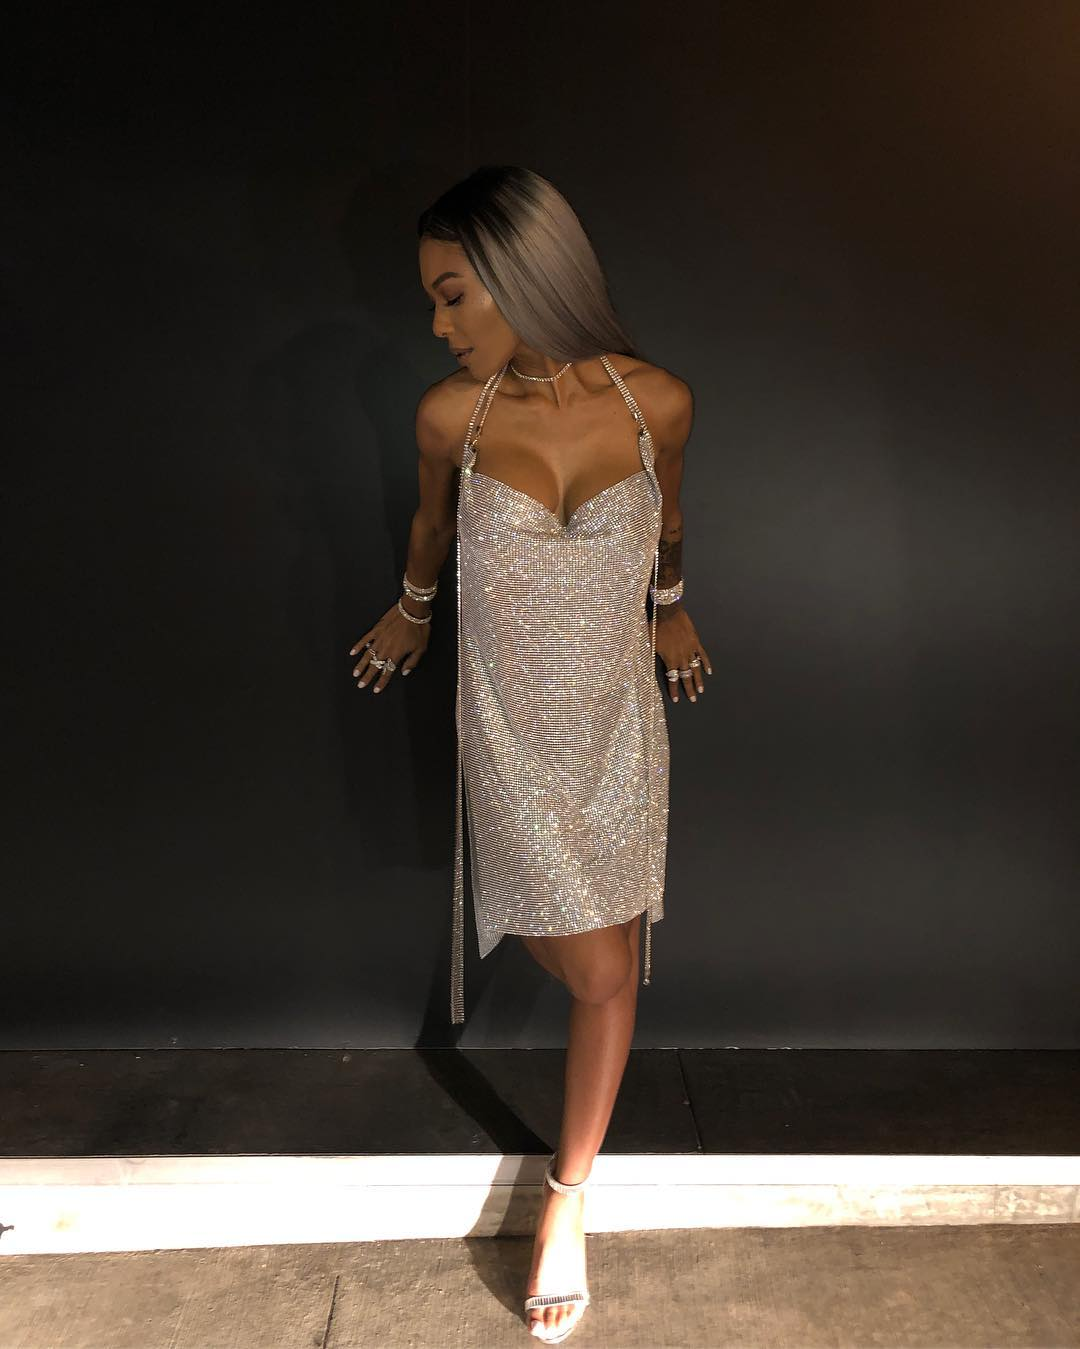 Moniece Slaughter awesome feet pic (2)